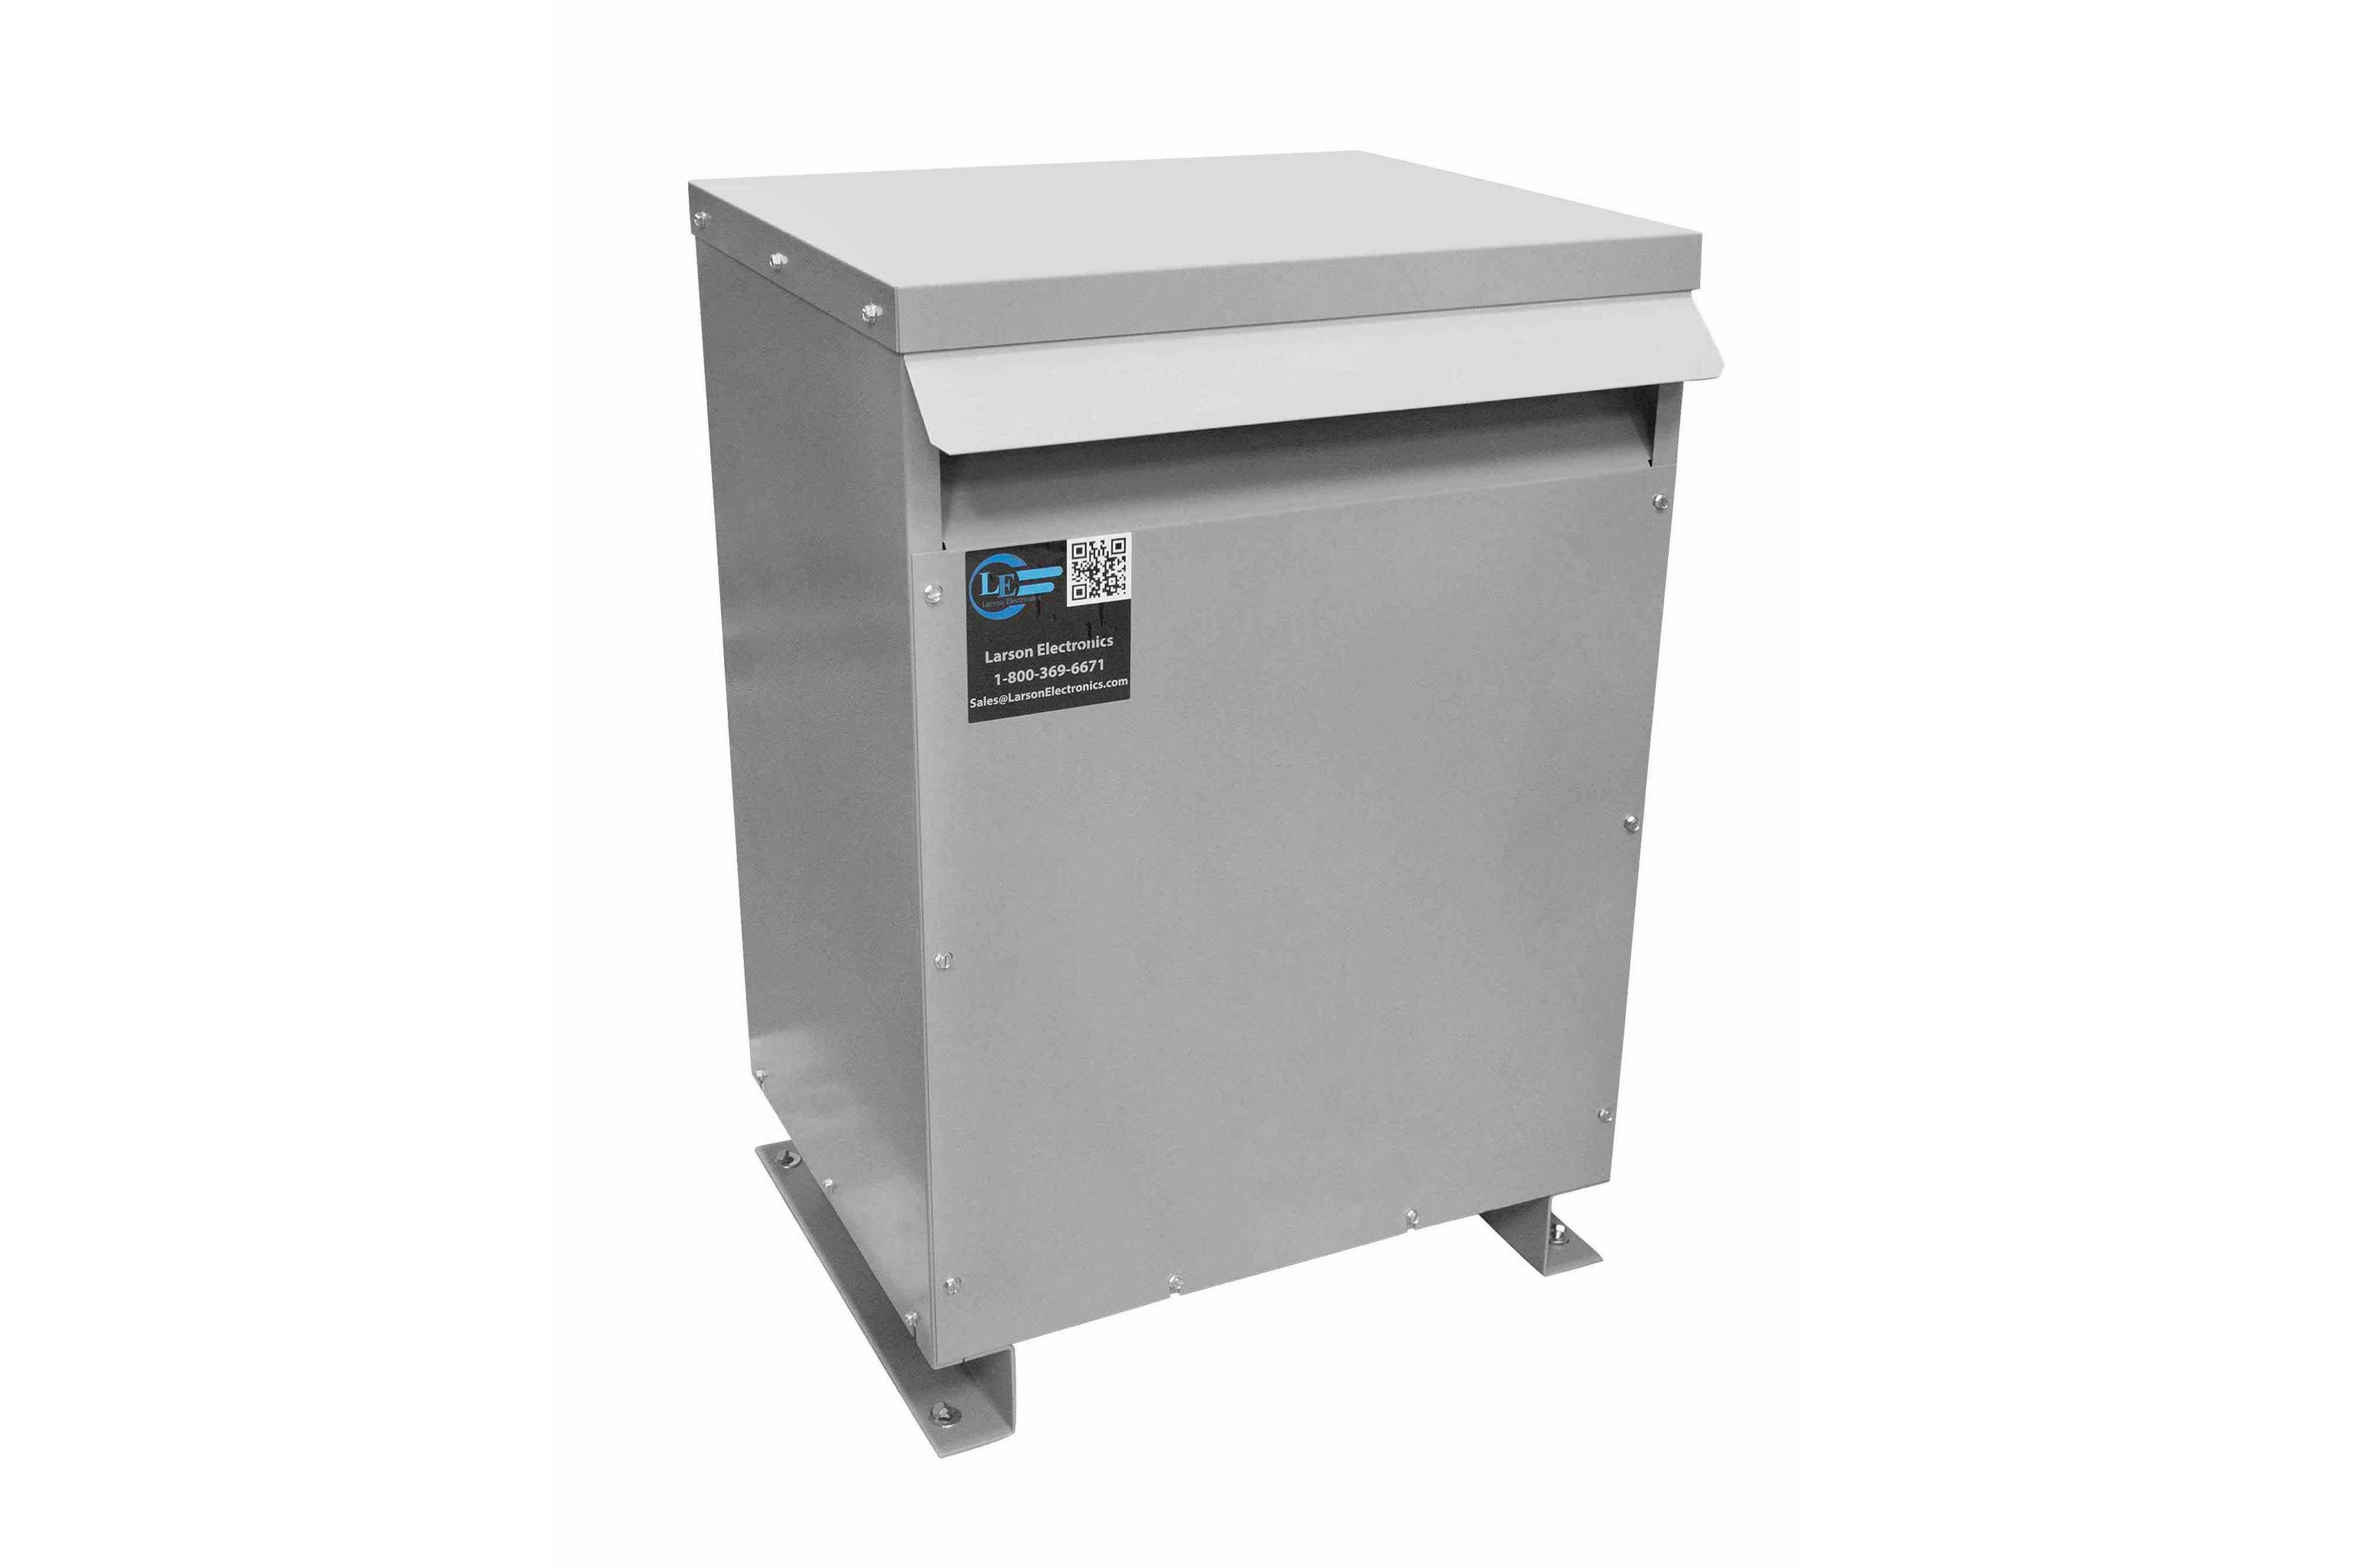 90 kVA 3PH Isolation Transformer, 230V Wye Primary, 208Y/120 Wye-N Secondary, N3R, Ventilated, 60 Hz